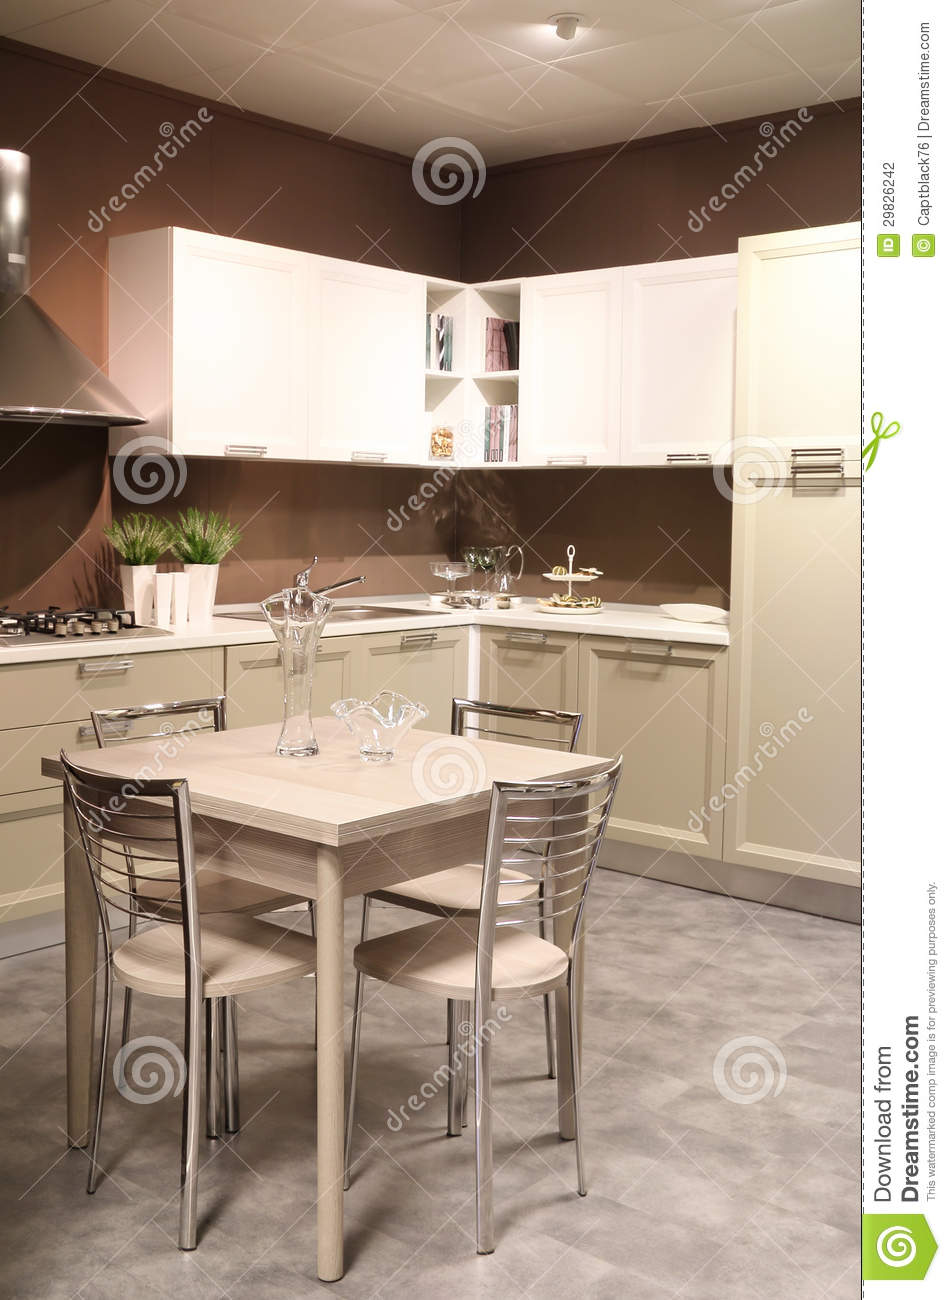 salle manger et cuisine l gantes photographie stock image 29826242. Black Bedroom Furniture Sets. Home Design Ideas